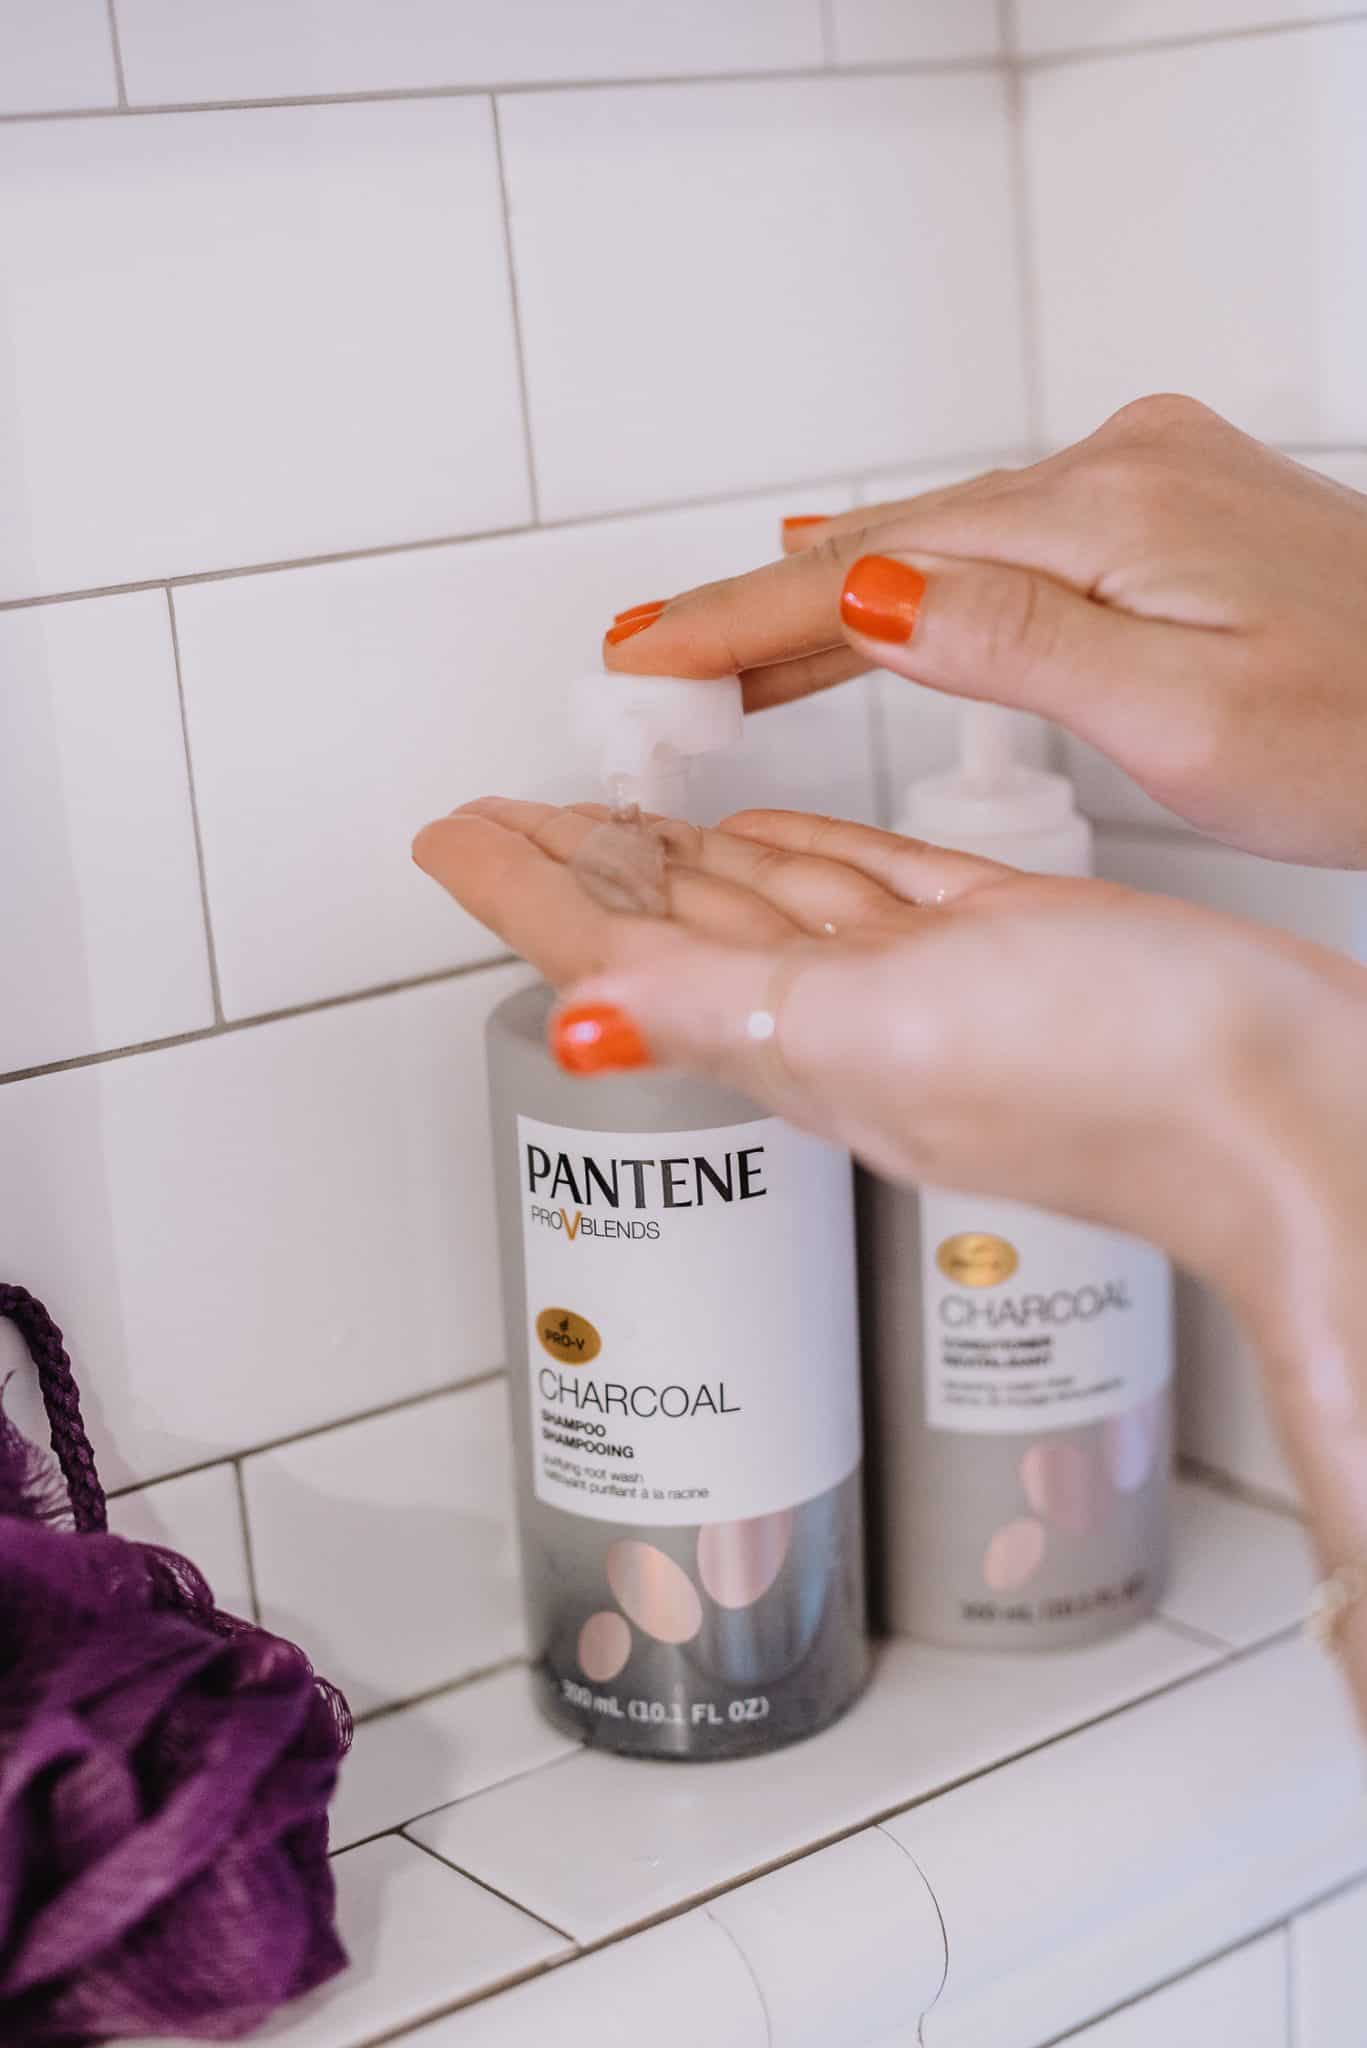 Pantene Charcoal in the shower